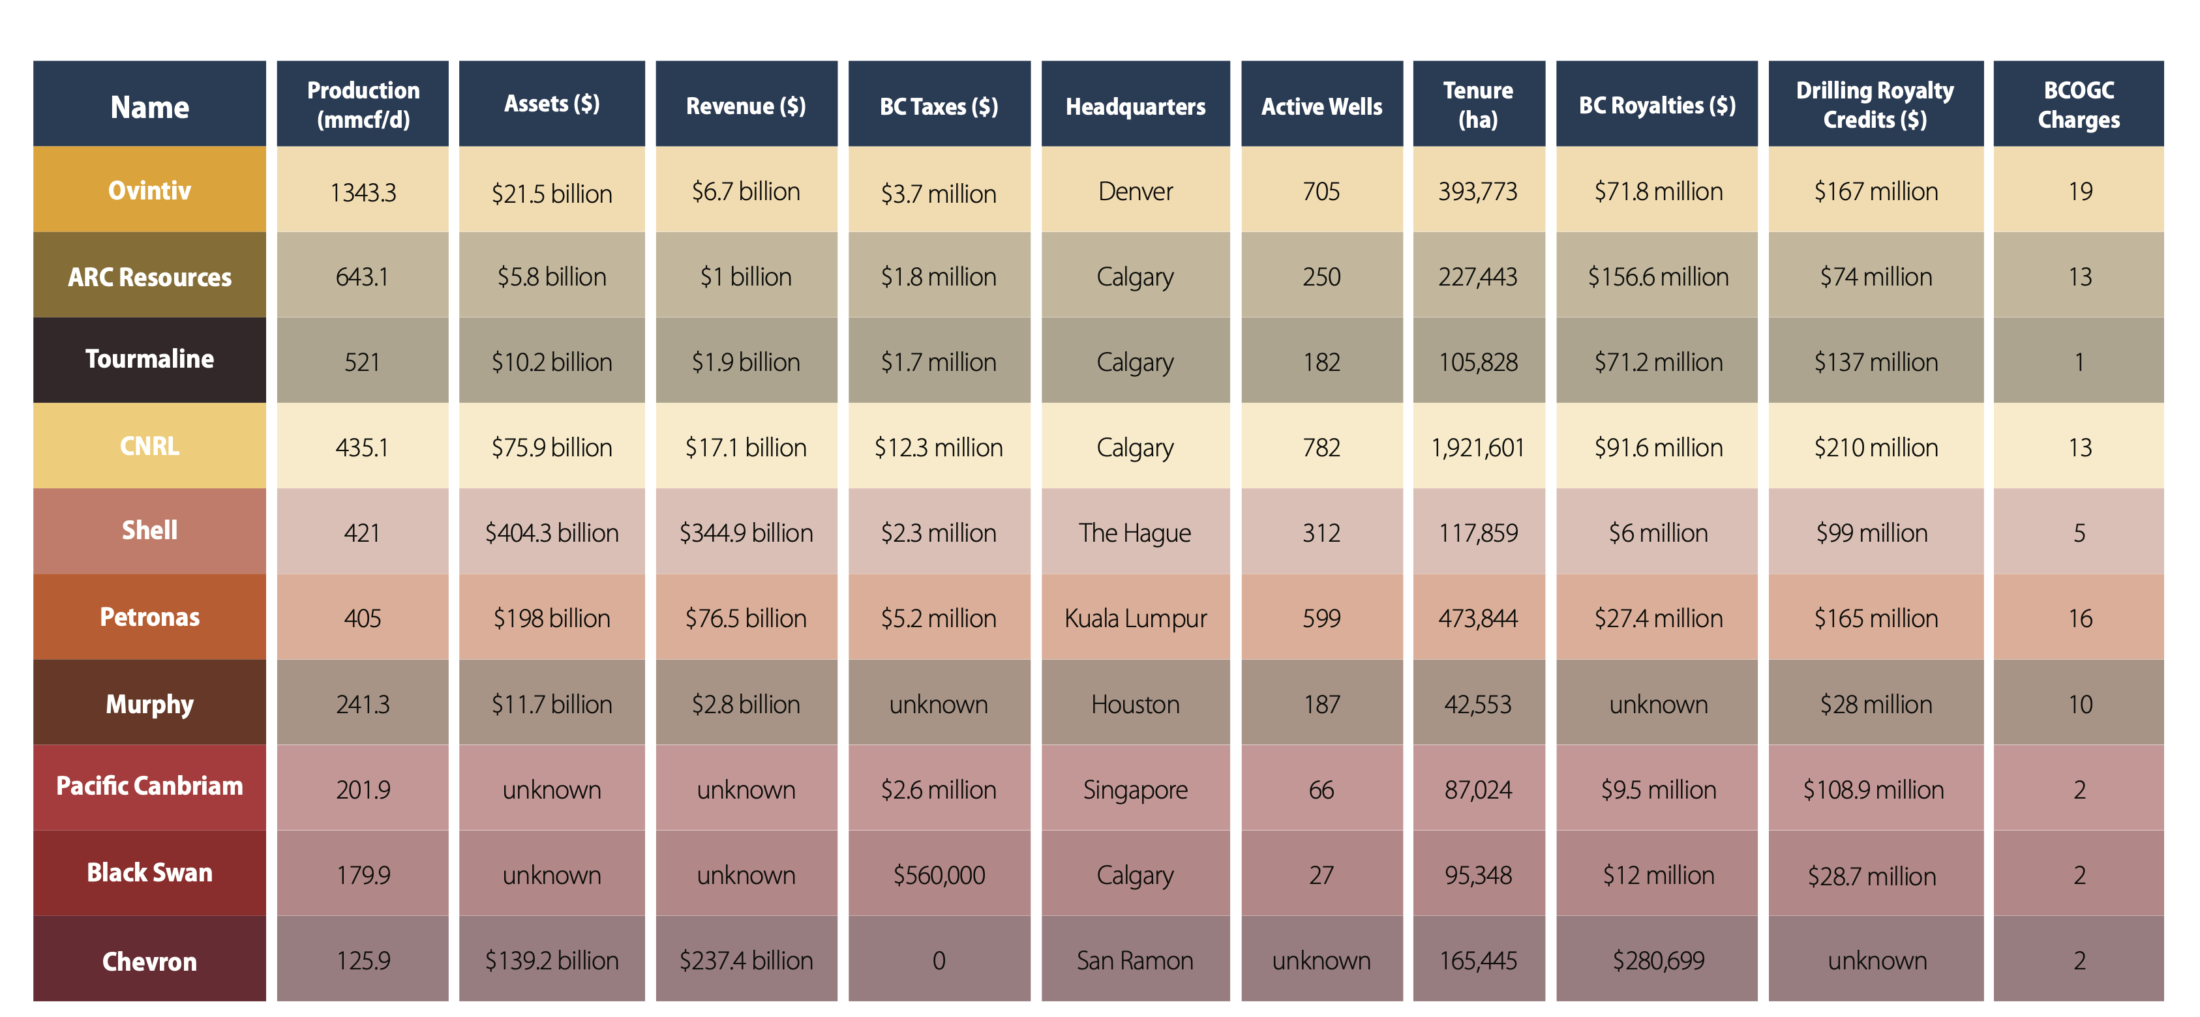 Graph showing B.C.'s top 10 fracking companies